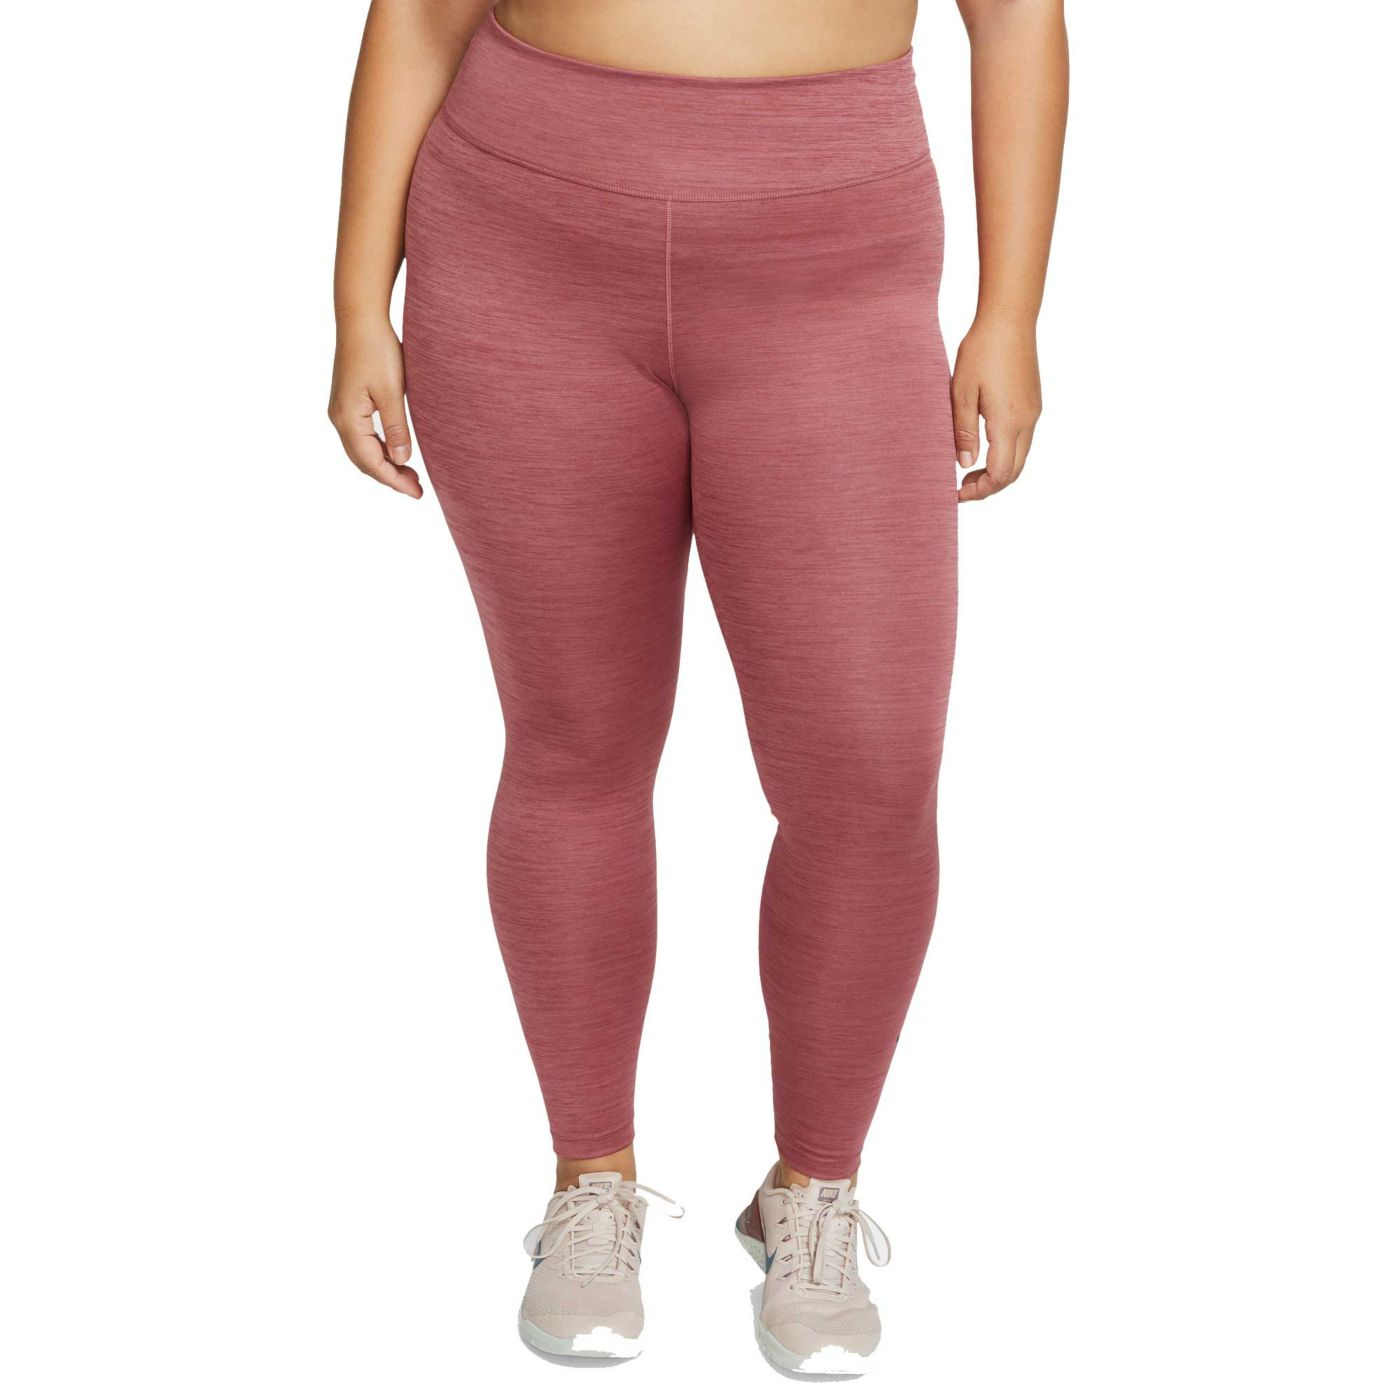 Nike One Women's Plus Size Training Tights